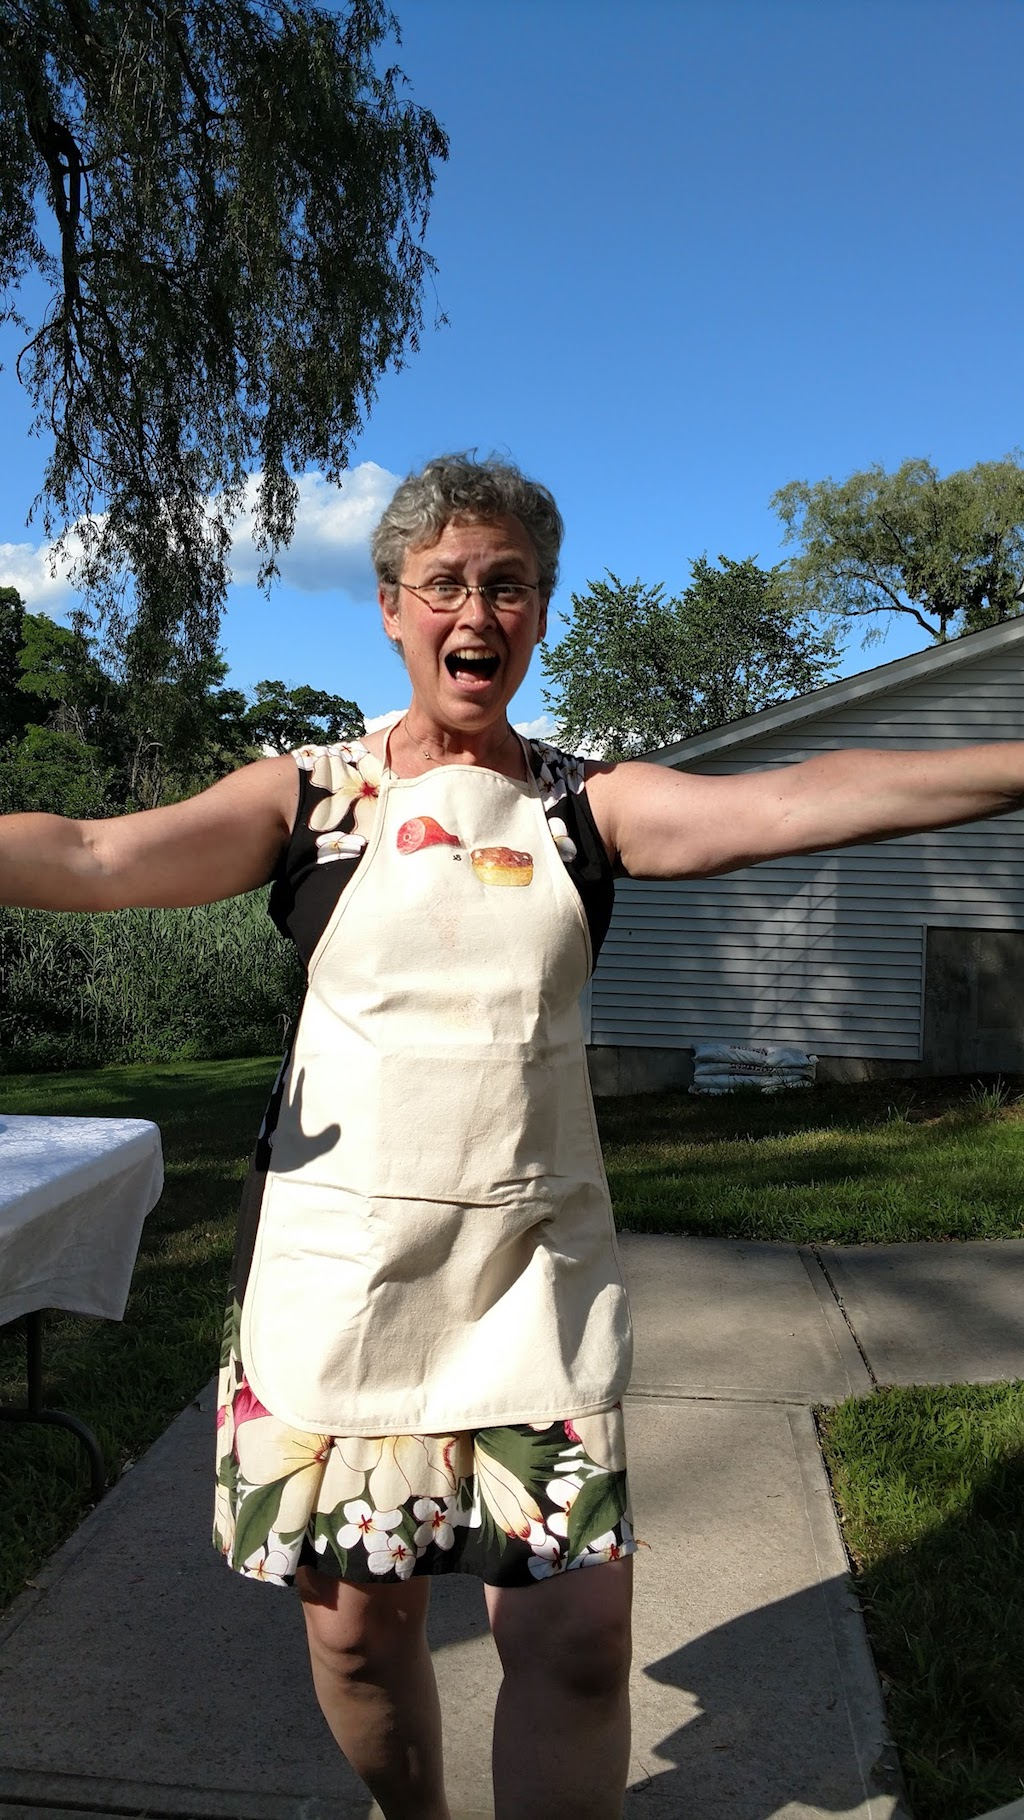 Happy volunteer at the Ham and Beans Supper hosted by St. Paul's Episcopal Church in Westbrook, CT